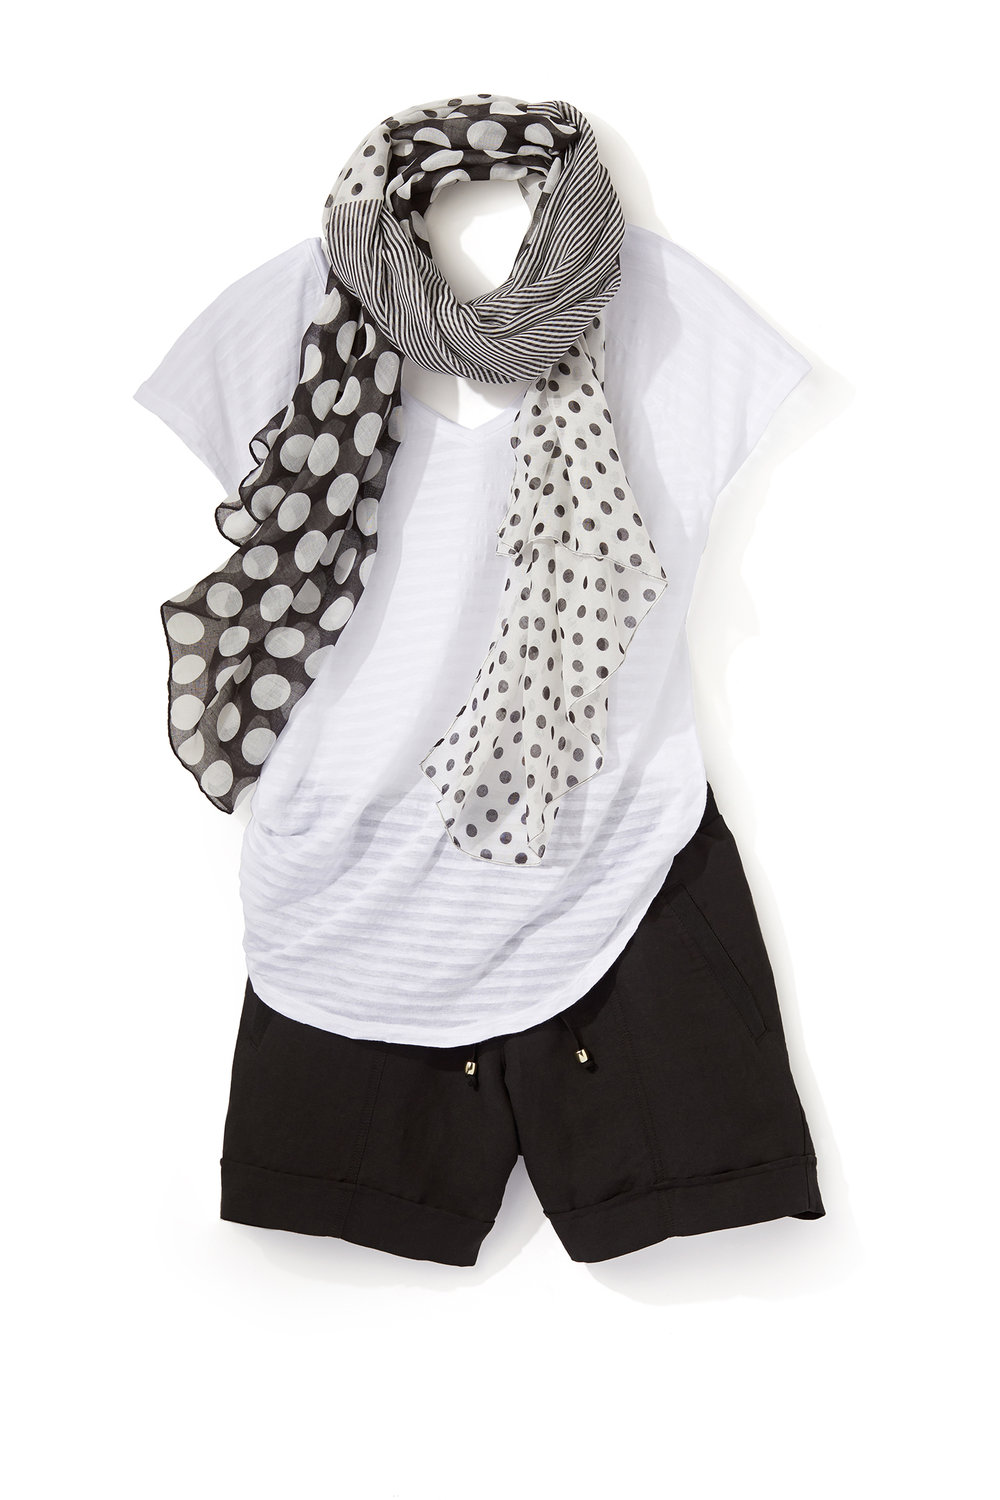 retouched laydown of white t-shirt and black shorts with black and white scarf on white background